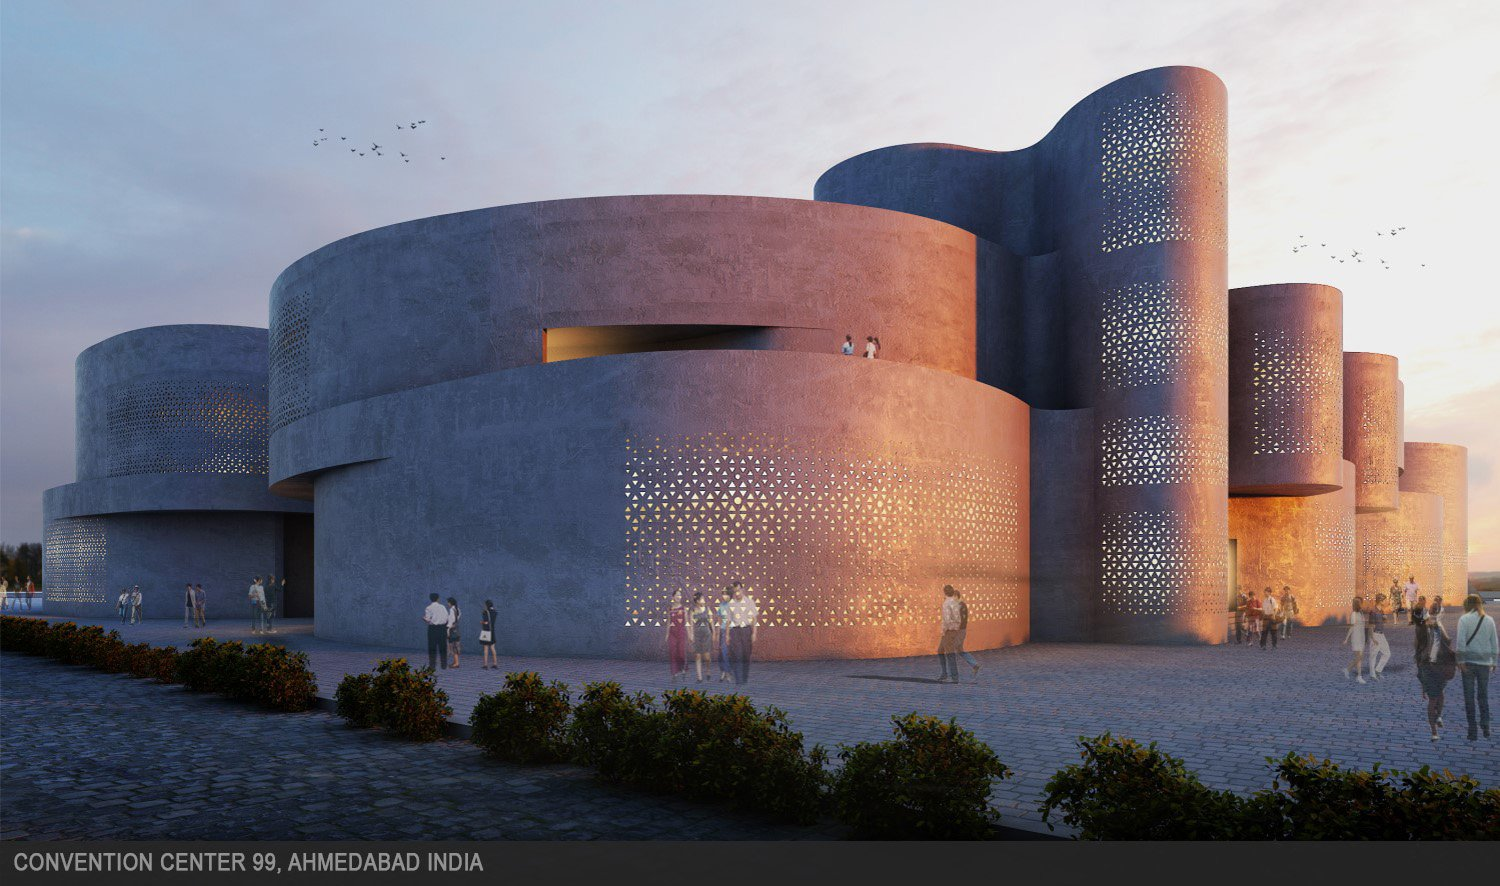 Generous use of perforated walls to allow natural light and ventilation. sanjay puri architects}